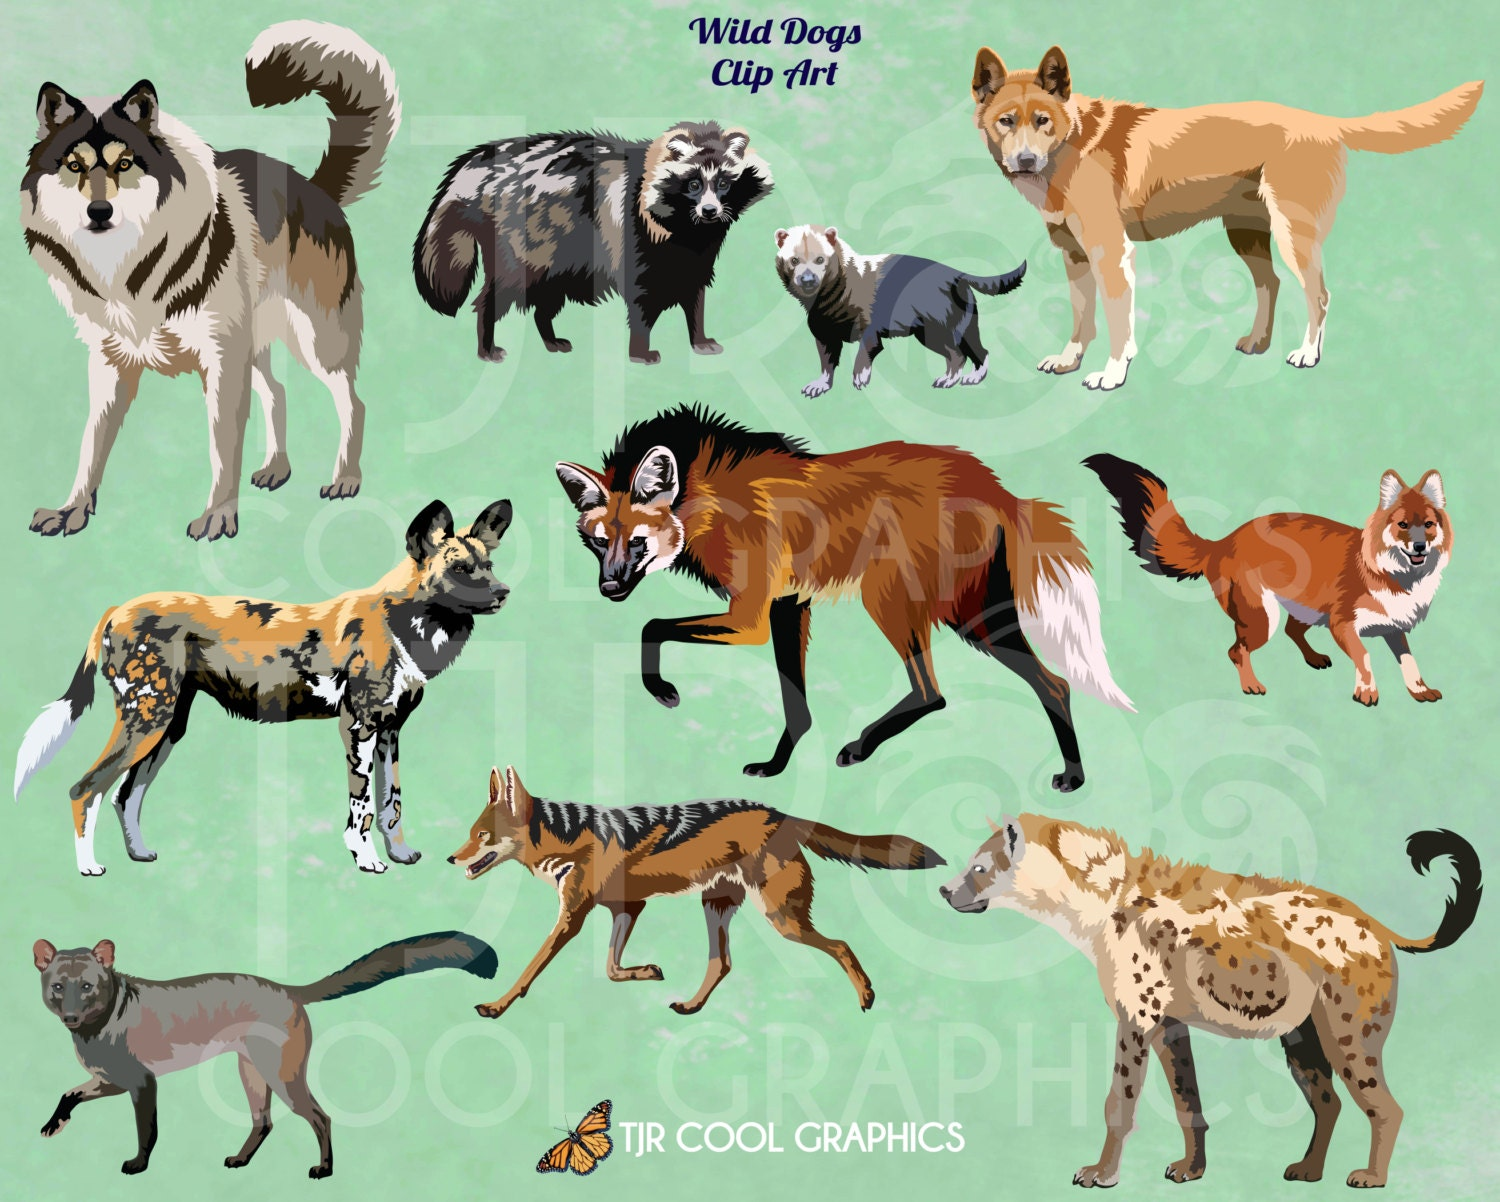 Scrapbook ideas for dogs - Wild Dogs Digital Realistic Clip Art Png Printable Gray Wolf Dingo Maned Wolf Dhole Spotted Hyena African Wild Dog Golden Jackal